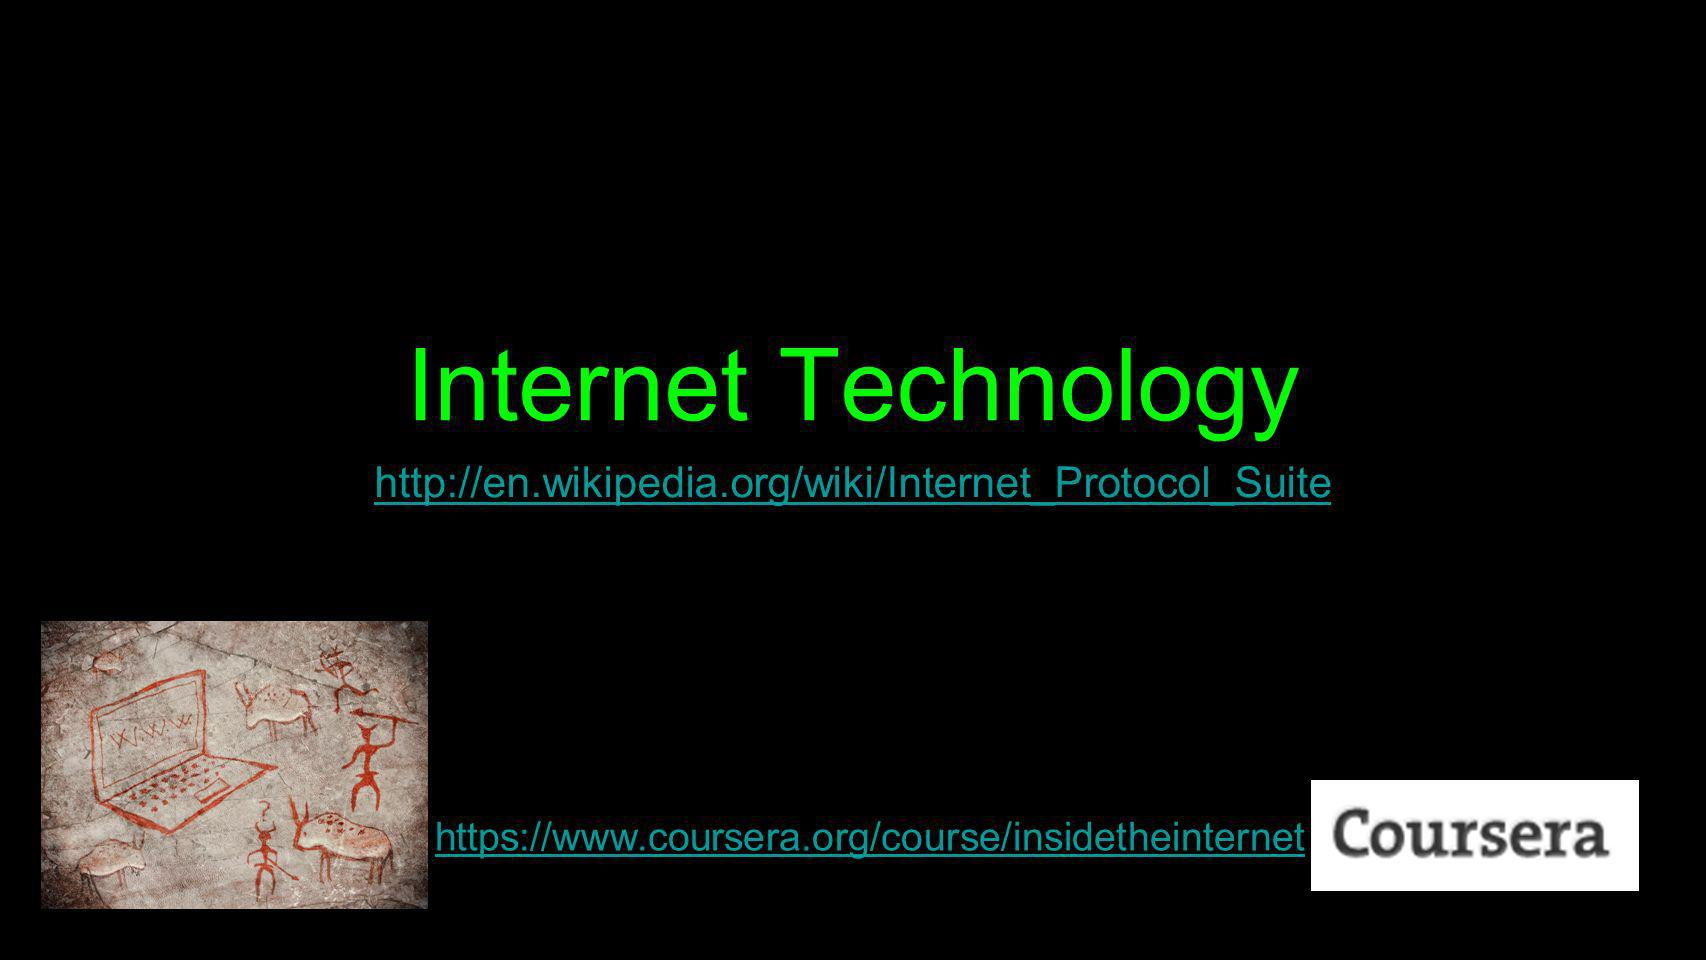 Internet technology httpscourseracourse internet technology httpenpediawikiinternetprotocolsuite xflitez Images